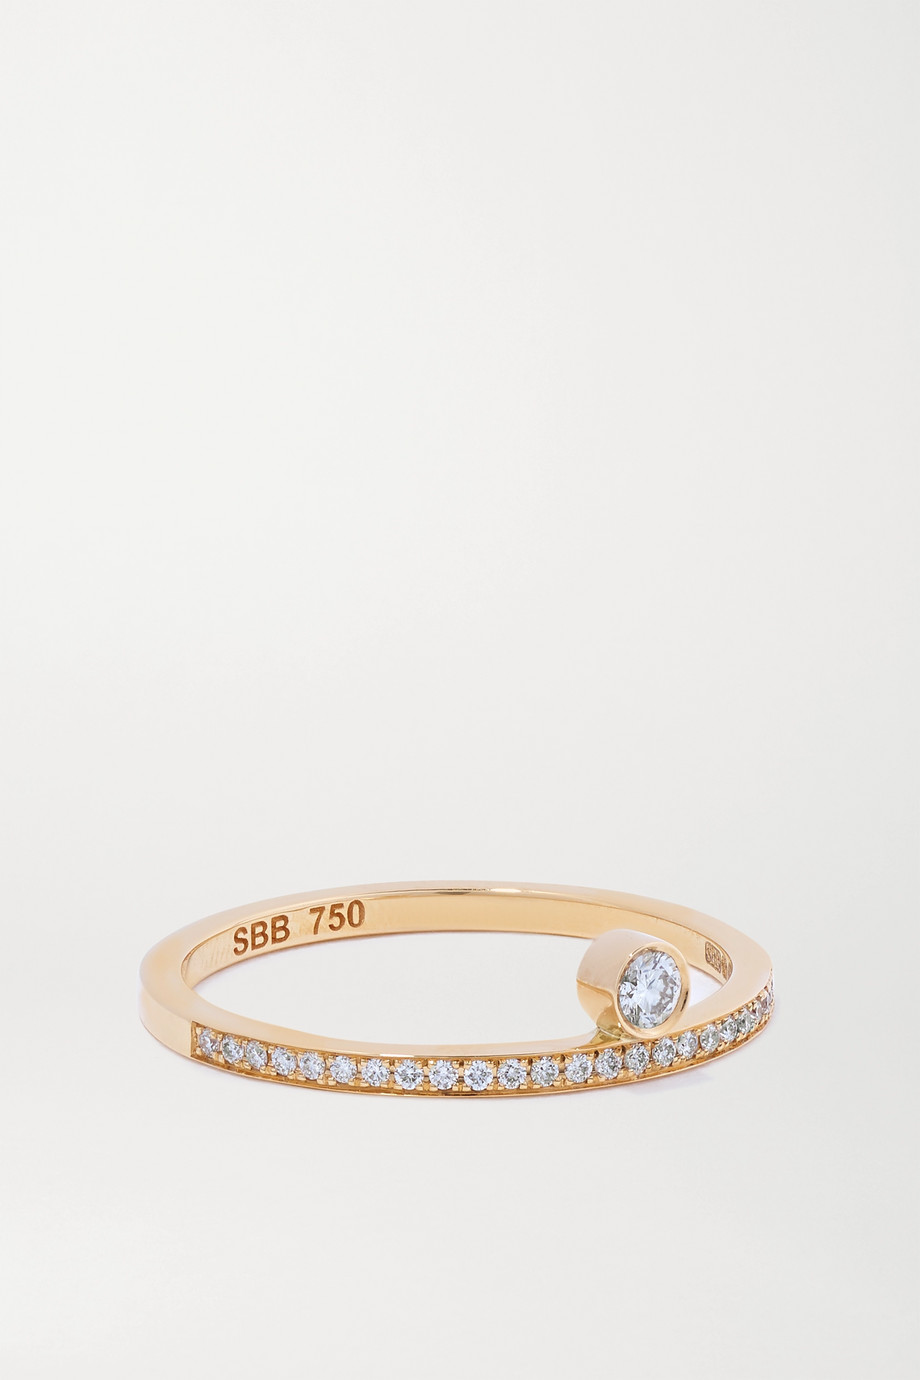 Sophie Bille Brahe Rue du Soleil 18-karat gold diamond ring